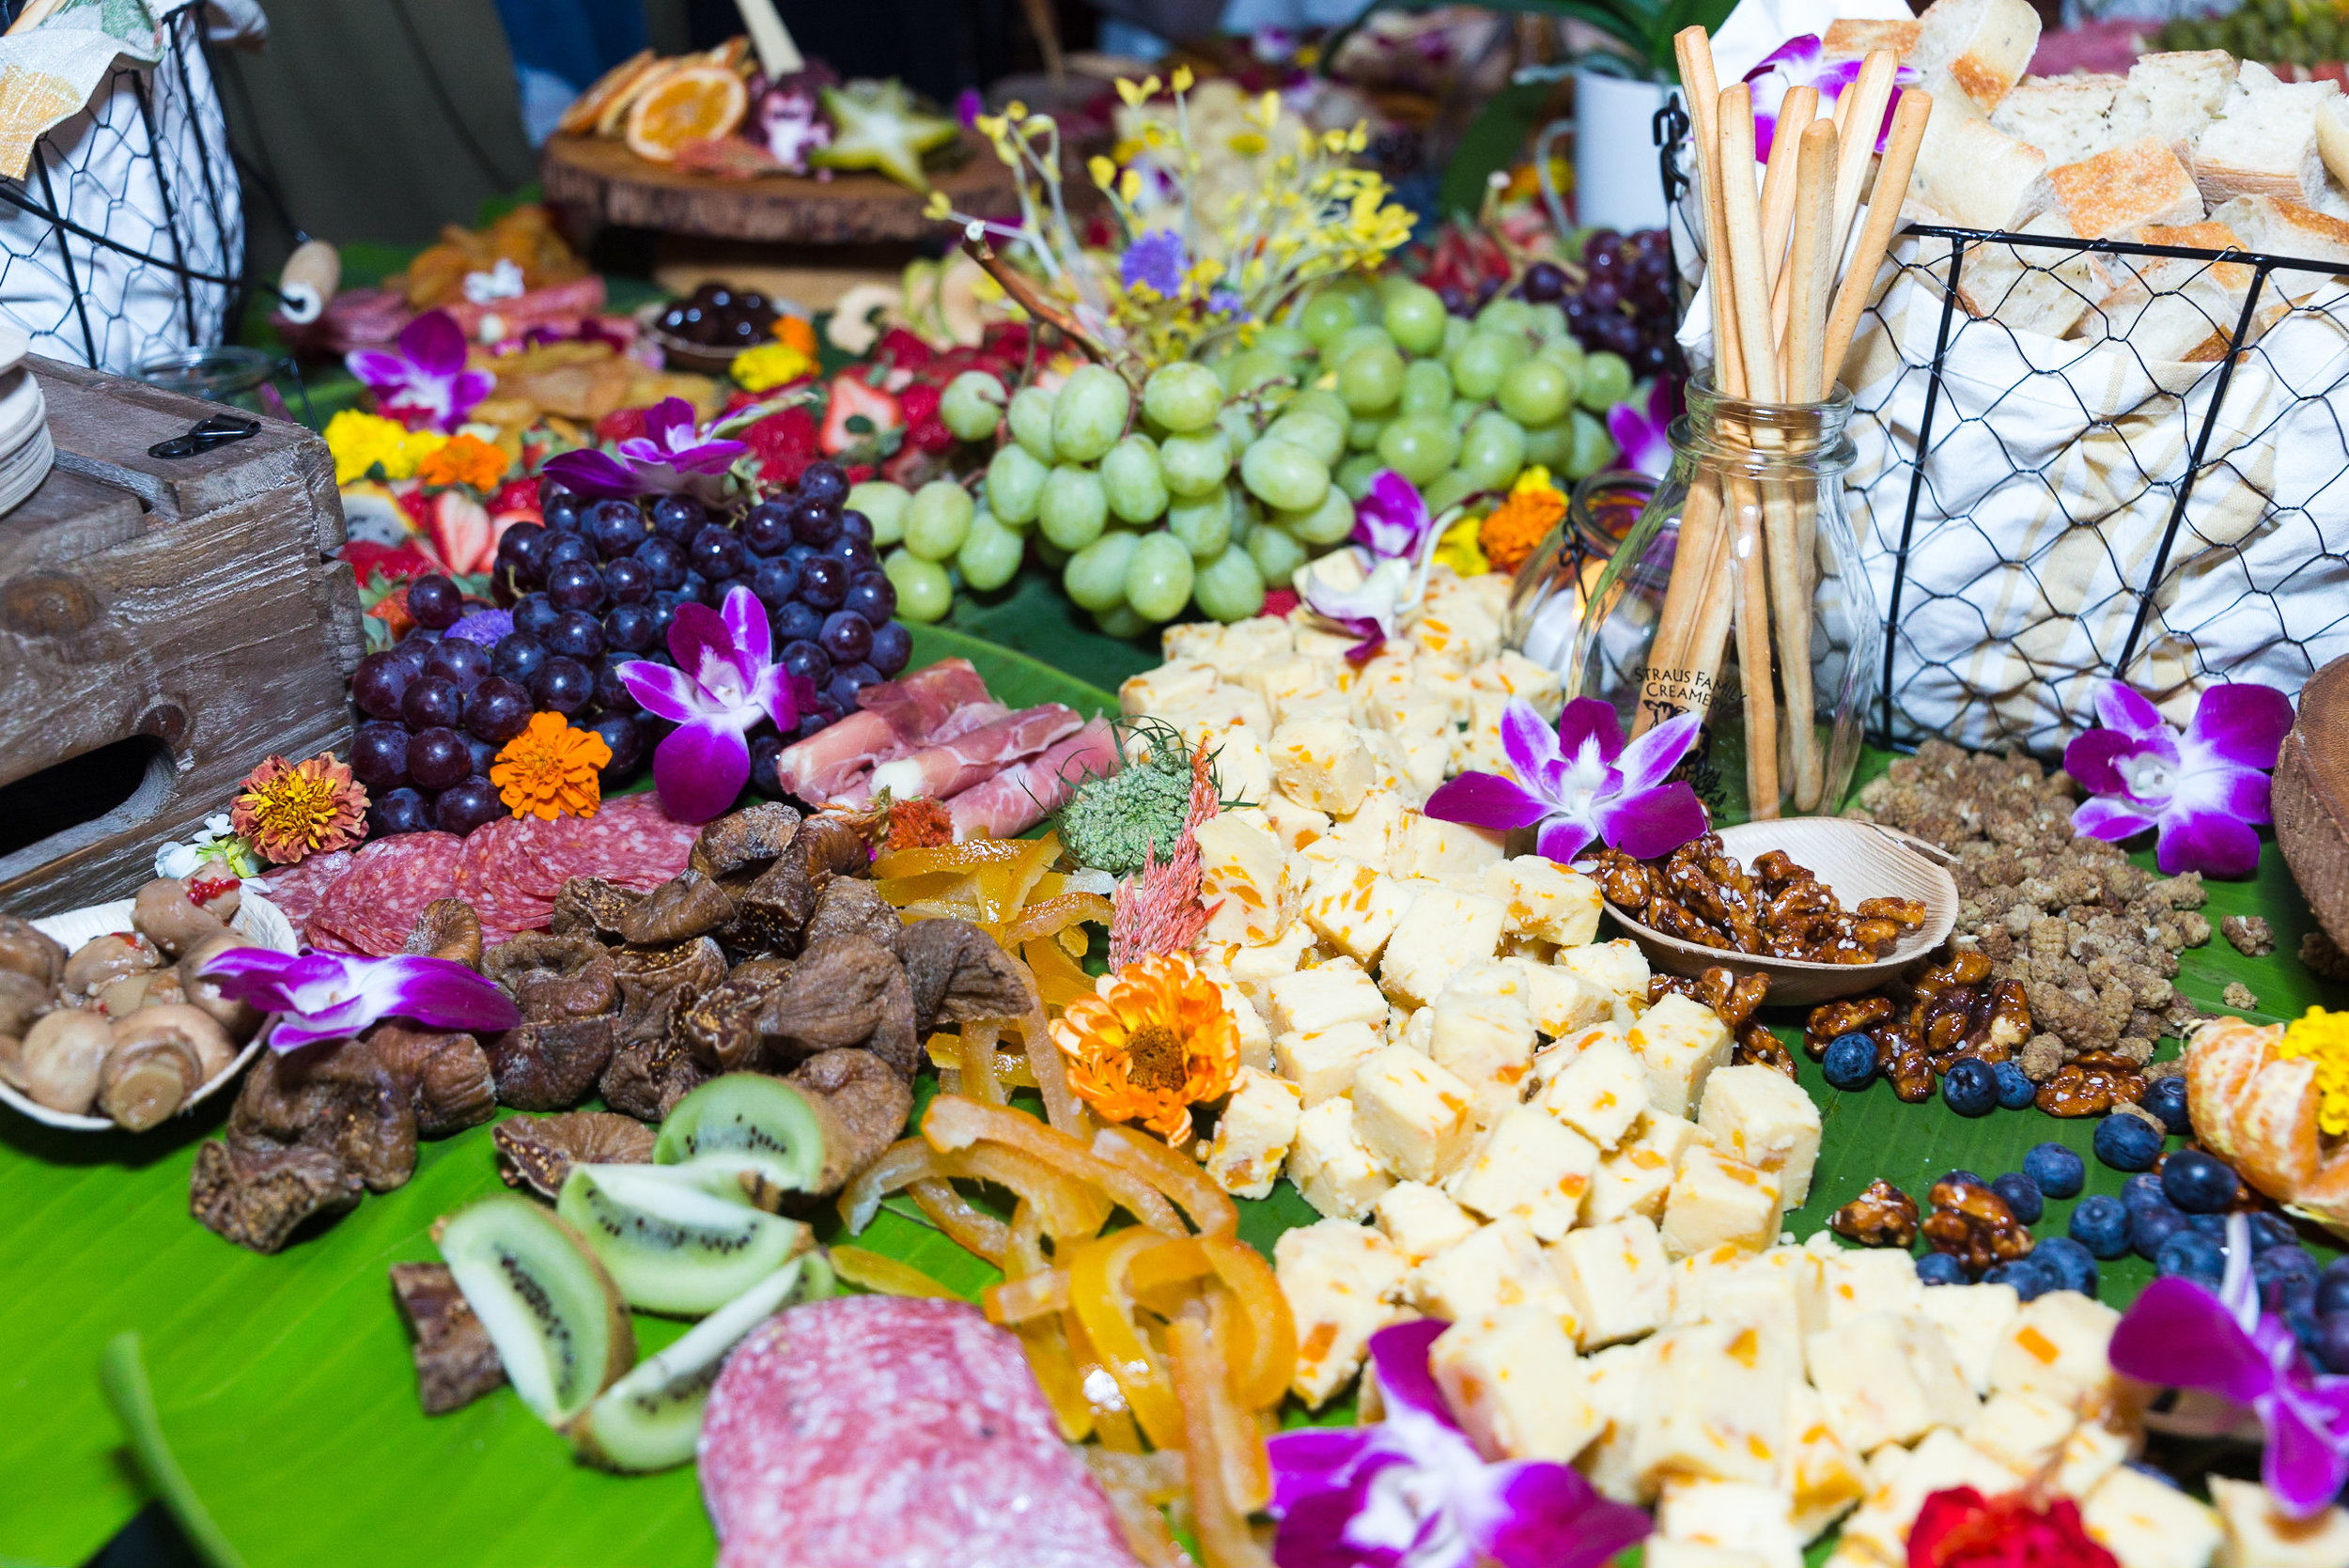 - LIGHT BITESCan't have drinks on an empty stomach! We're treating you to delectable bites crafted by local chefs.